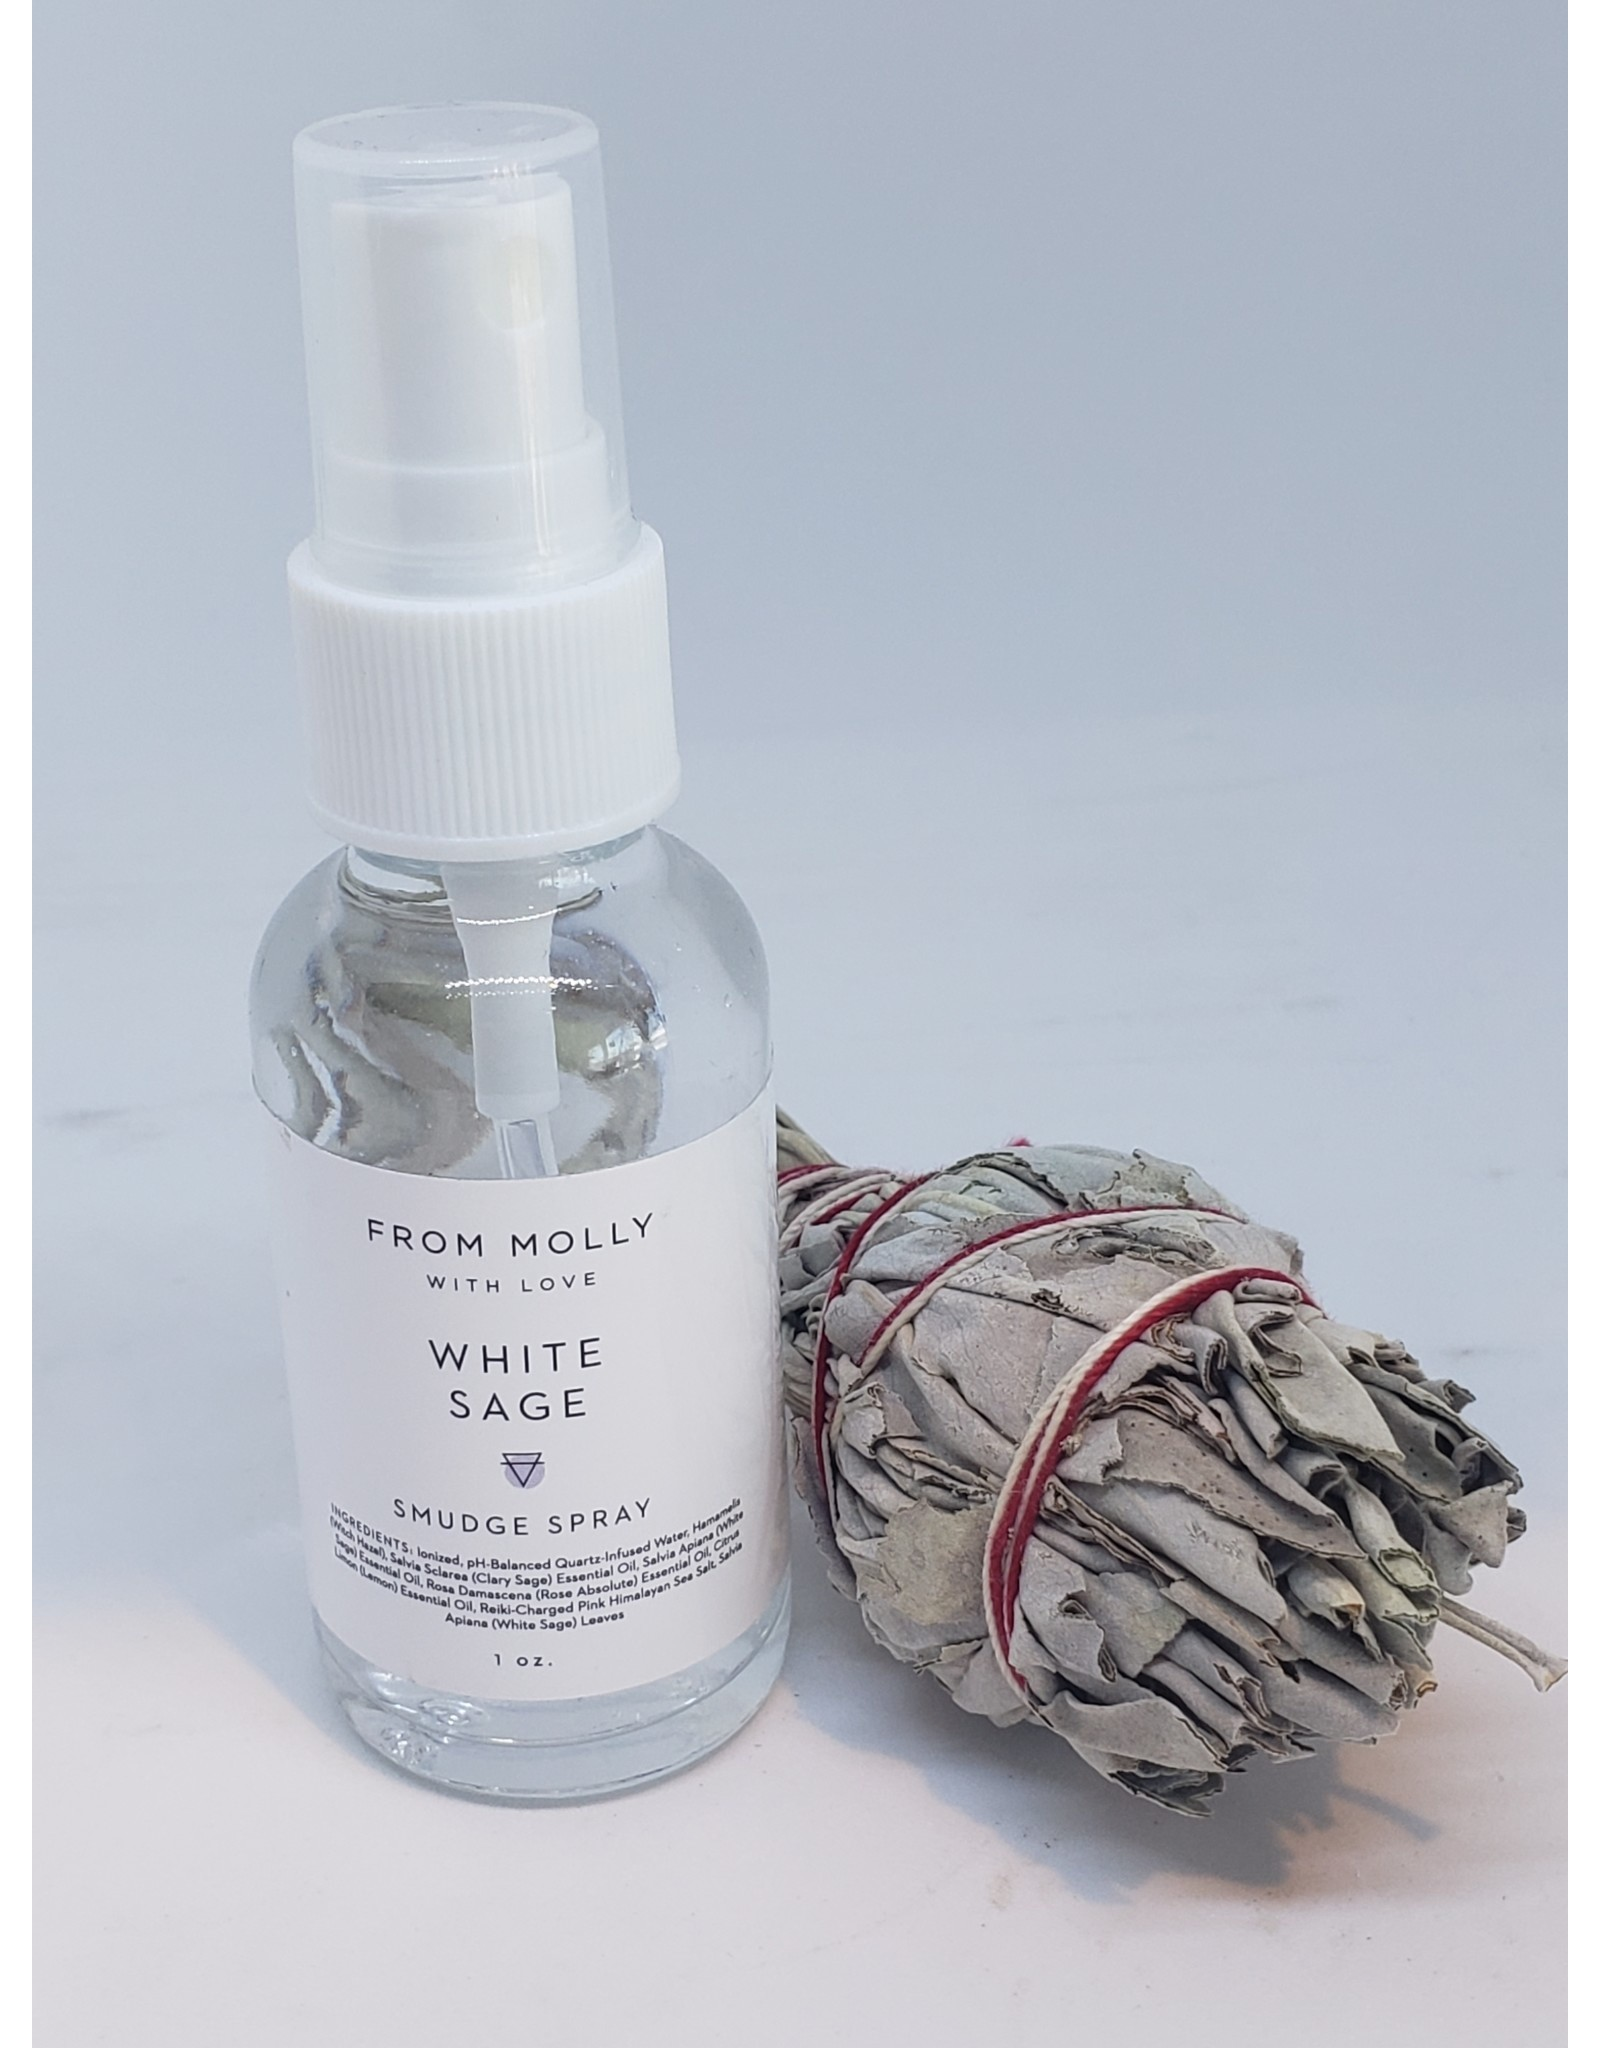 White Sage Smudge Spray 1 oz.